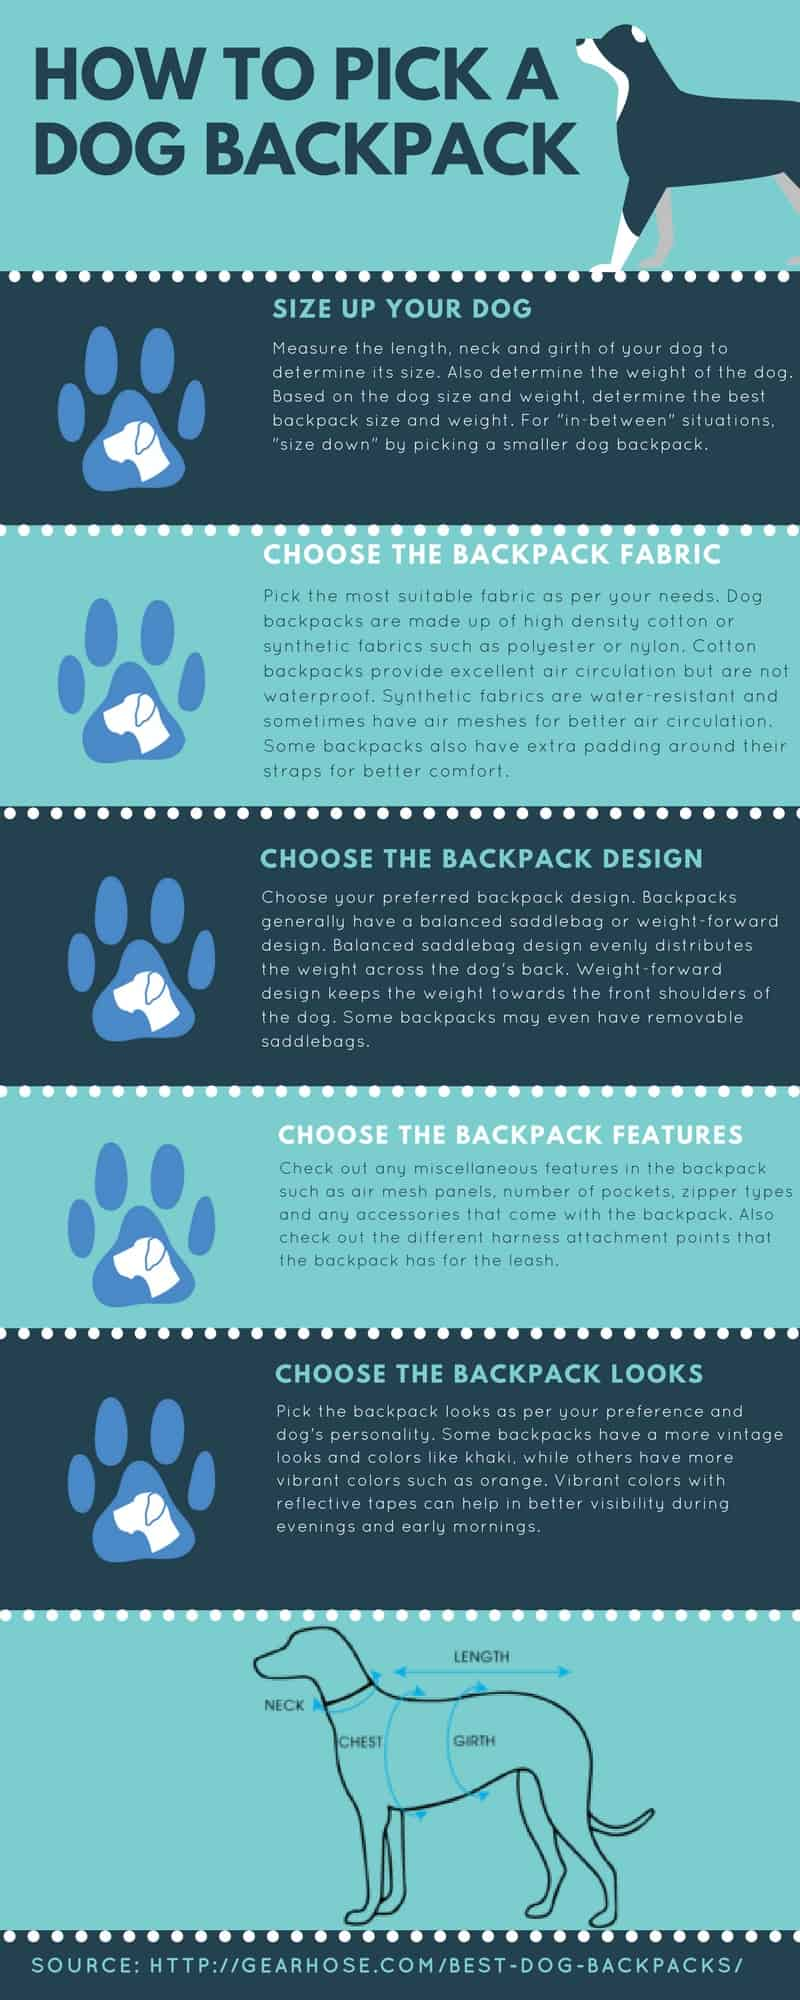 How to pick a dog backpack